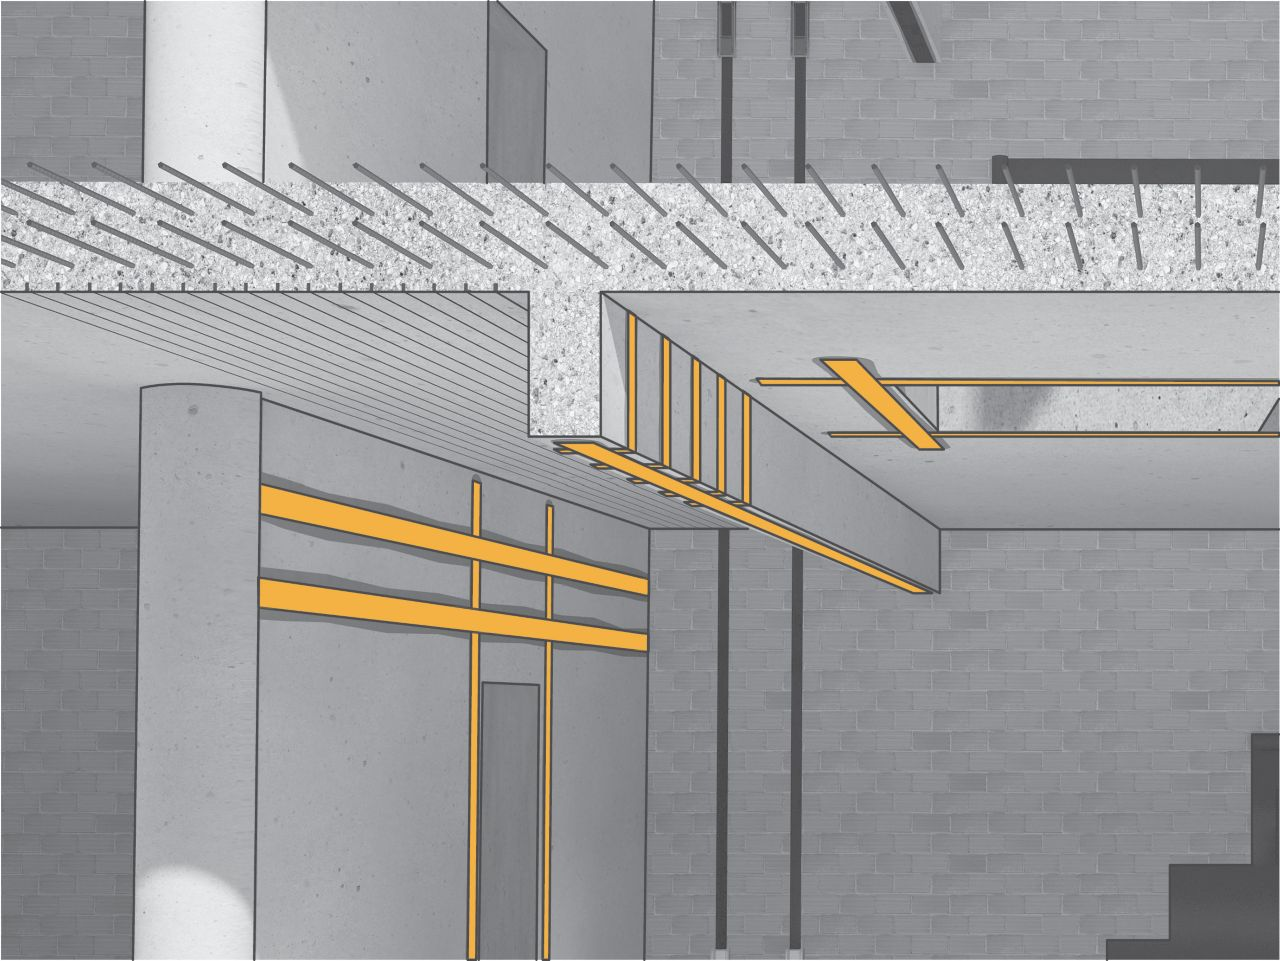 Illustration of concrete and brick building interior wall and beams reinforced with structural strengthening carbon fiber plates